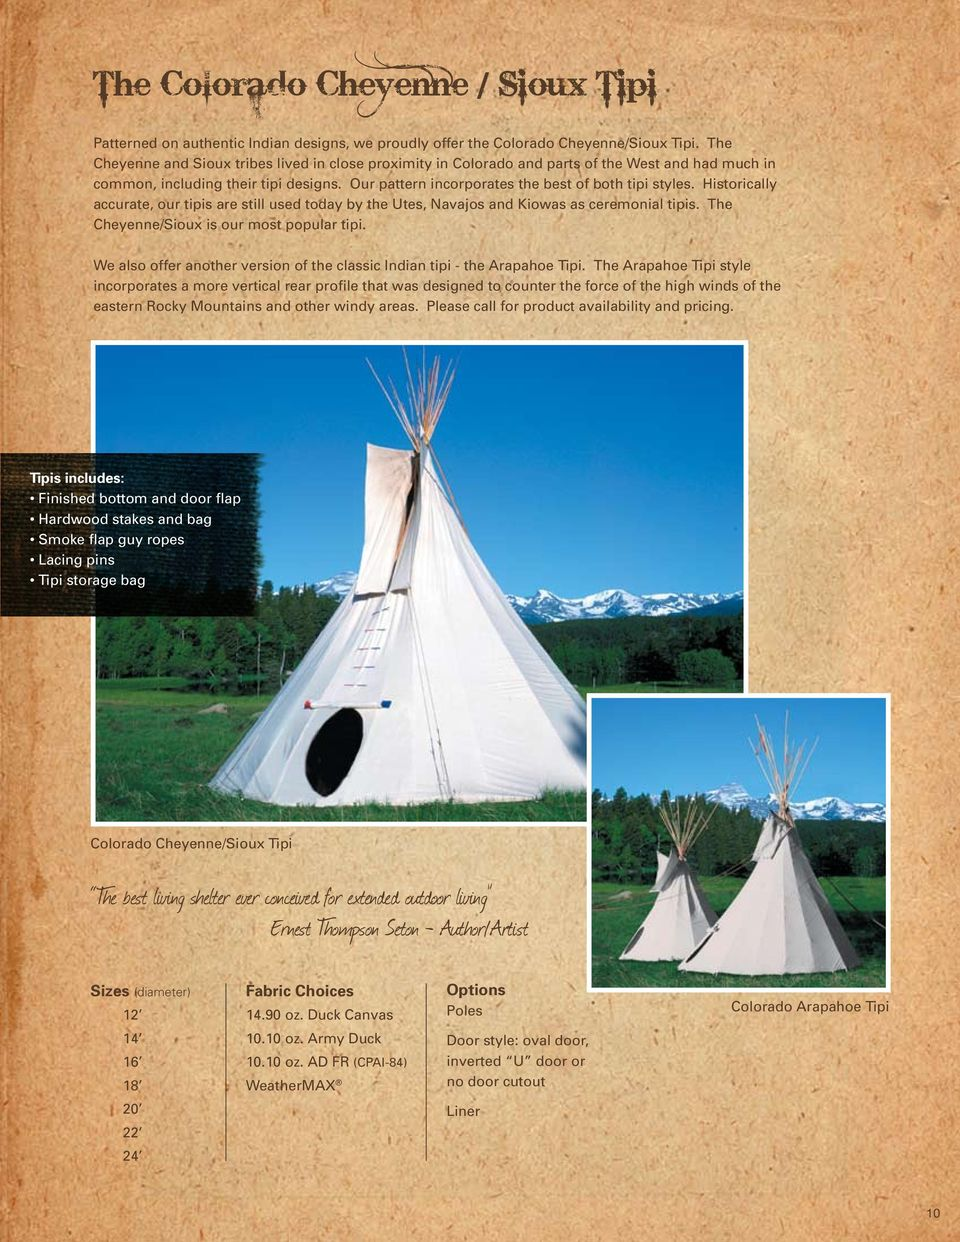 Historically accurate, our tipis are still used today by the Utes, Navajos and Kiowas as ceremonial tipis. The Cheyenne/Sioux is our most popular tipi.